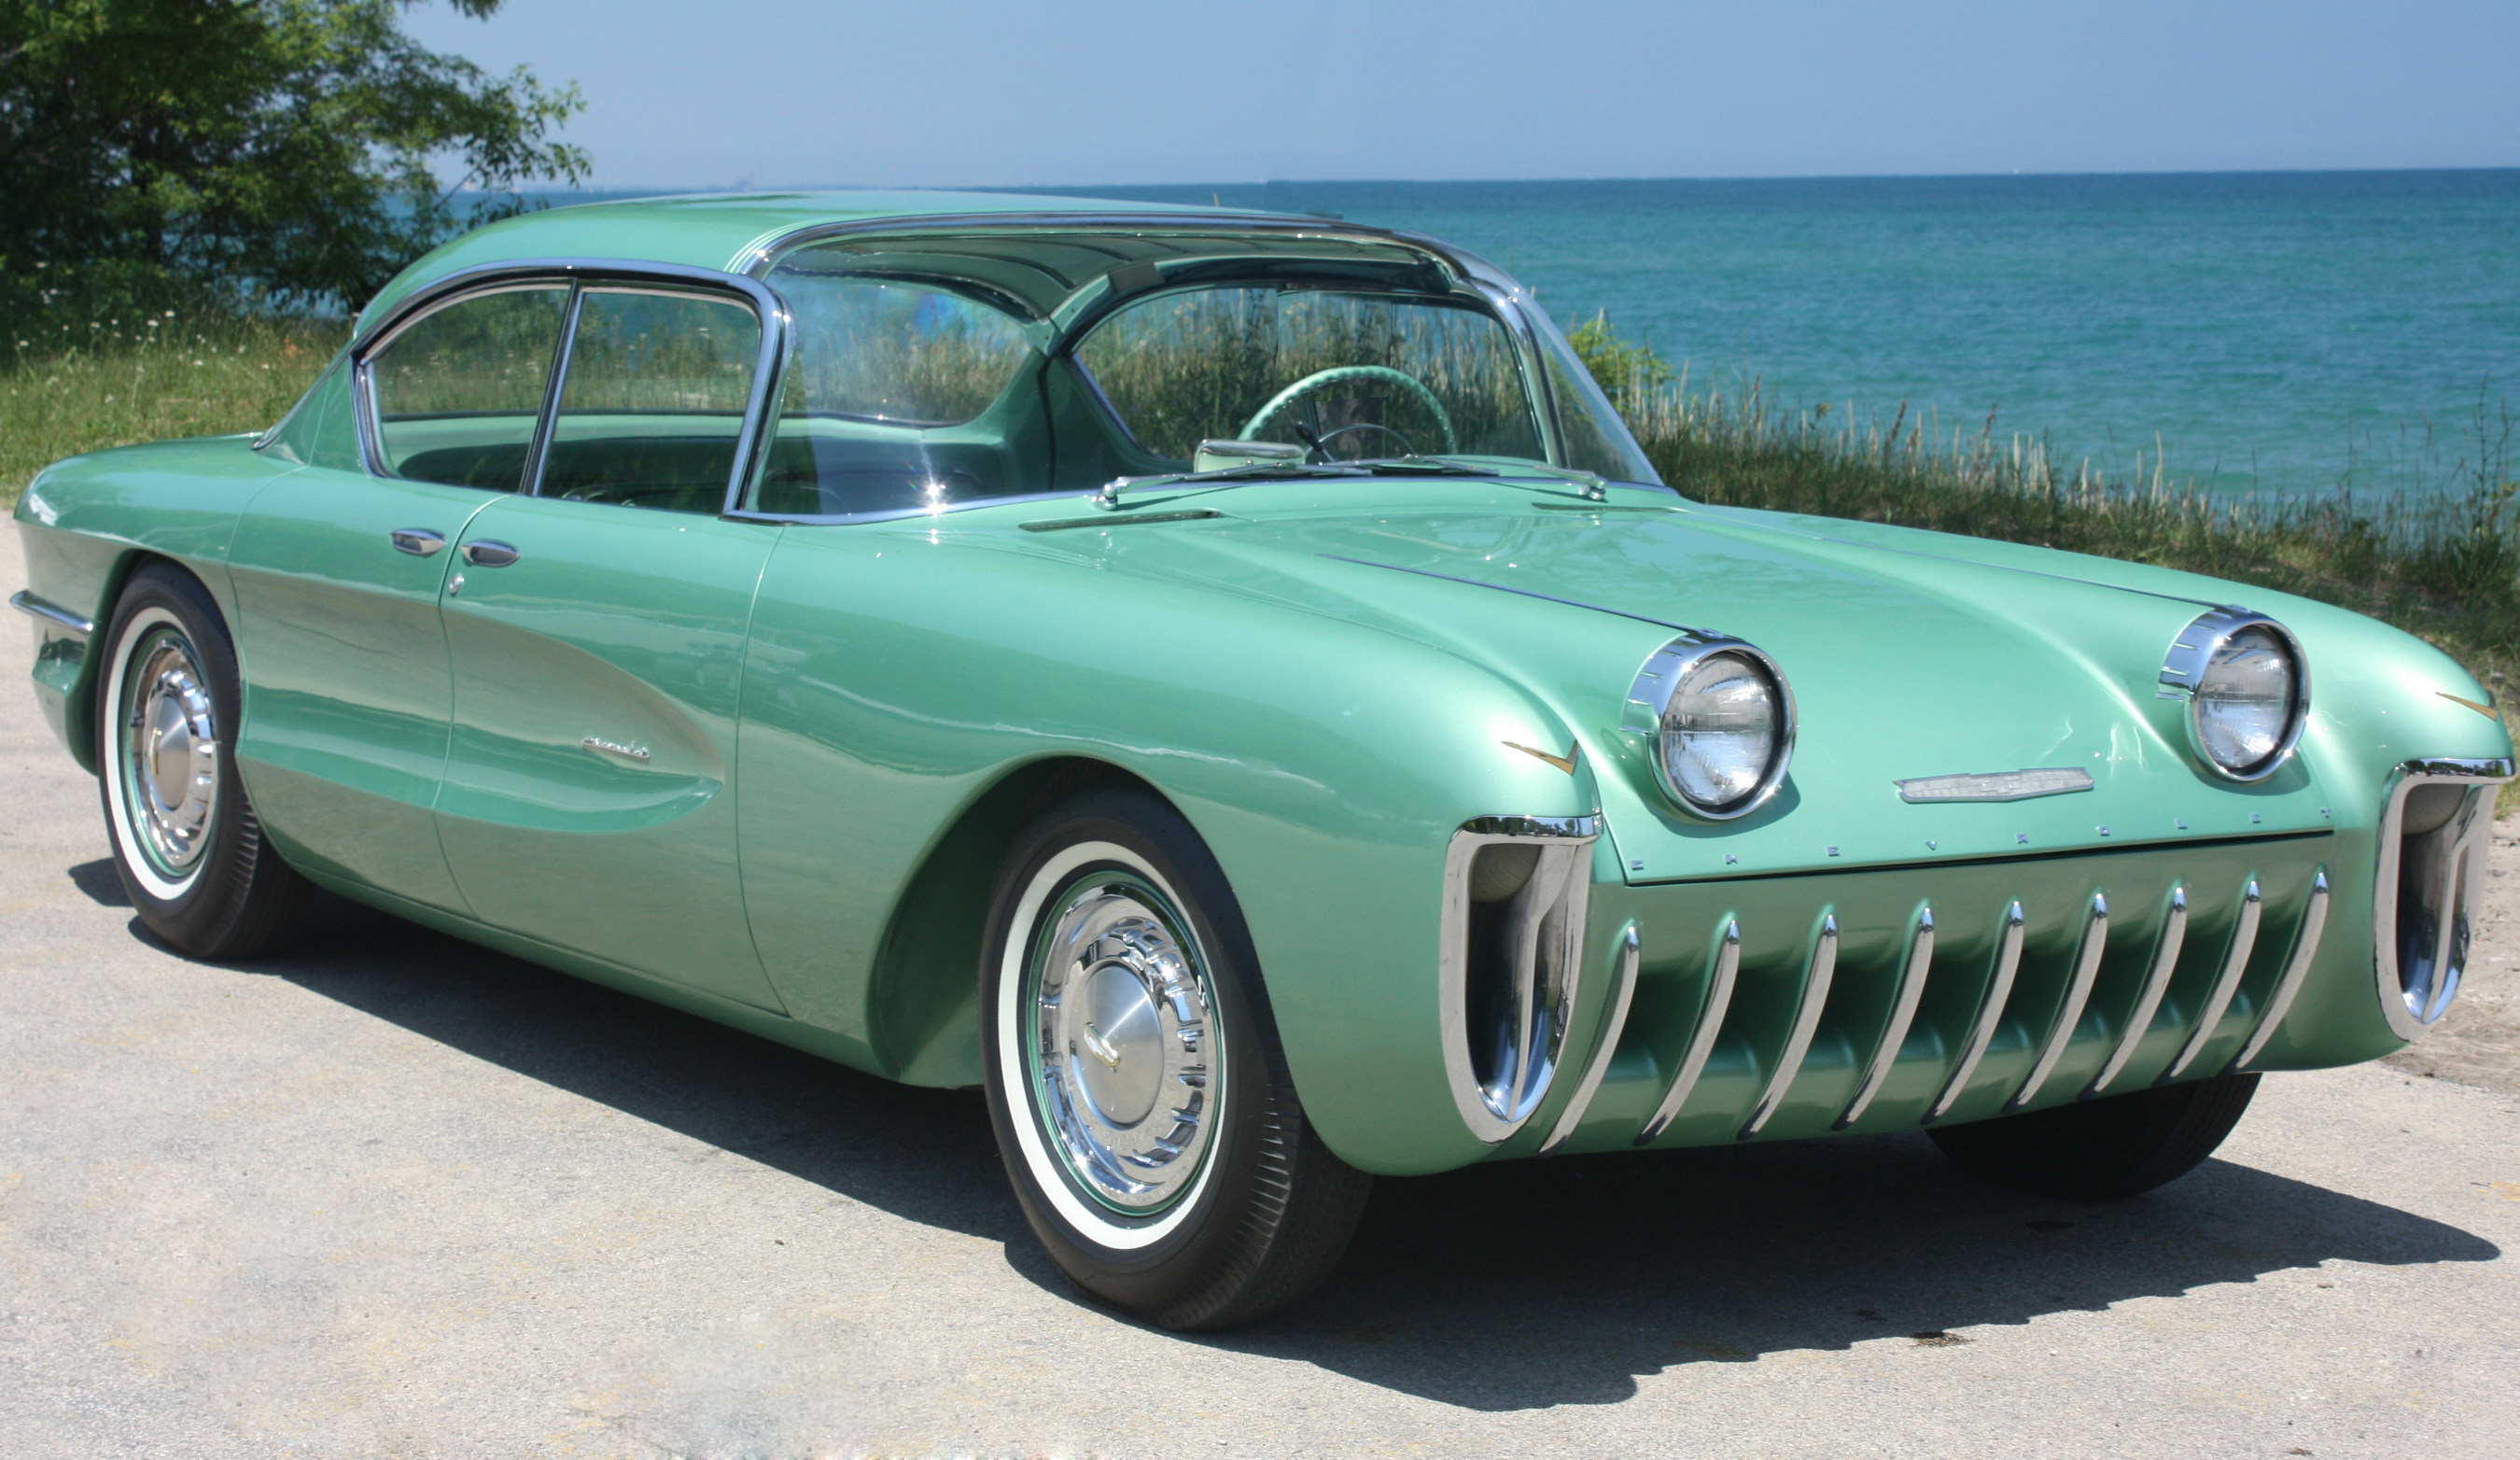 Car Museum Los Angeles >> 1955 Chevrolet Biscayne Concept Car on Display at the New Petersen Automotive Museum